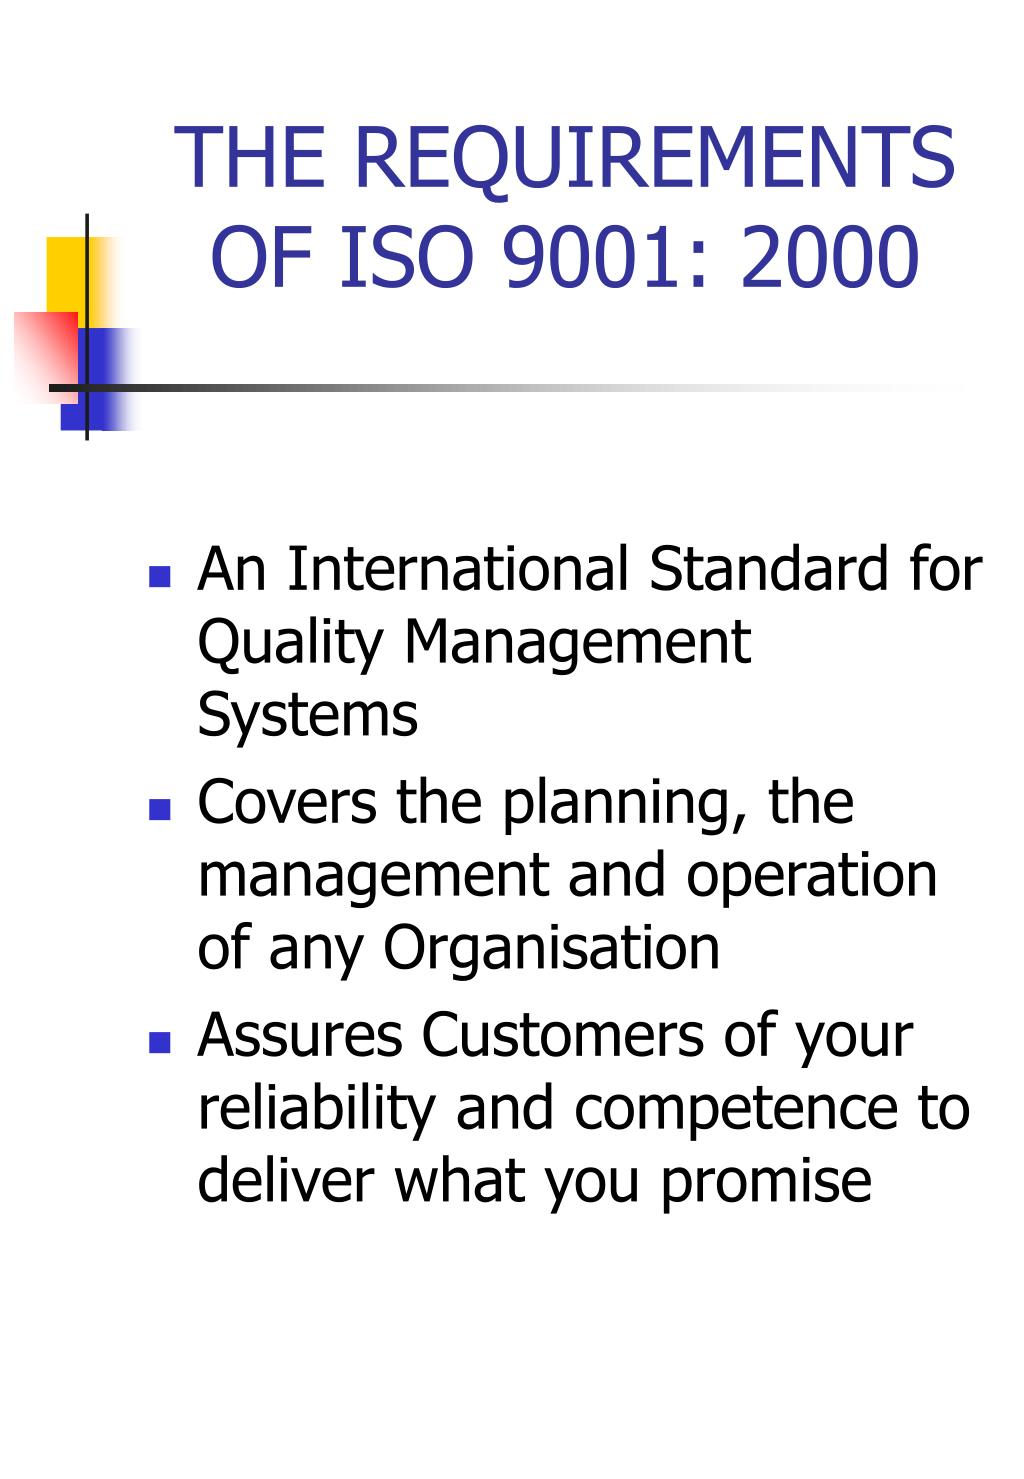 THE REQUIREMENTS OF ISO 9001: 2000